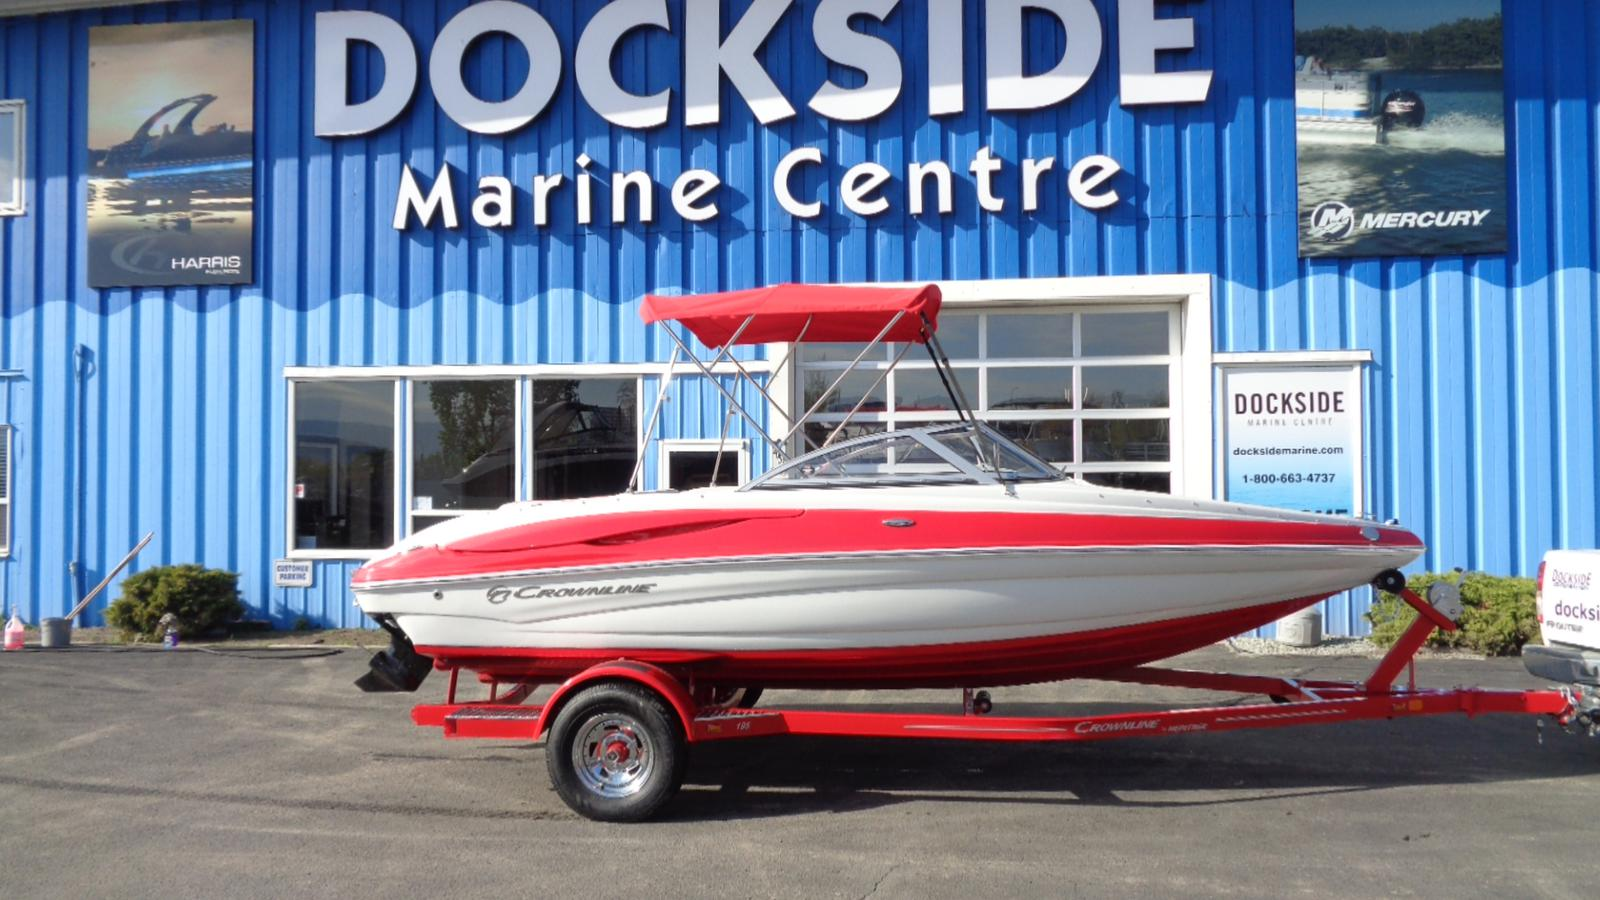 For Sale: 2018 Crownline 195 Ss 20ft<br/>Dockside Marine Centre, LTD.